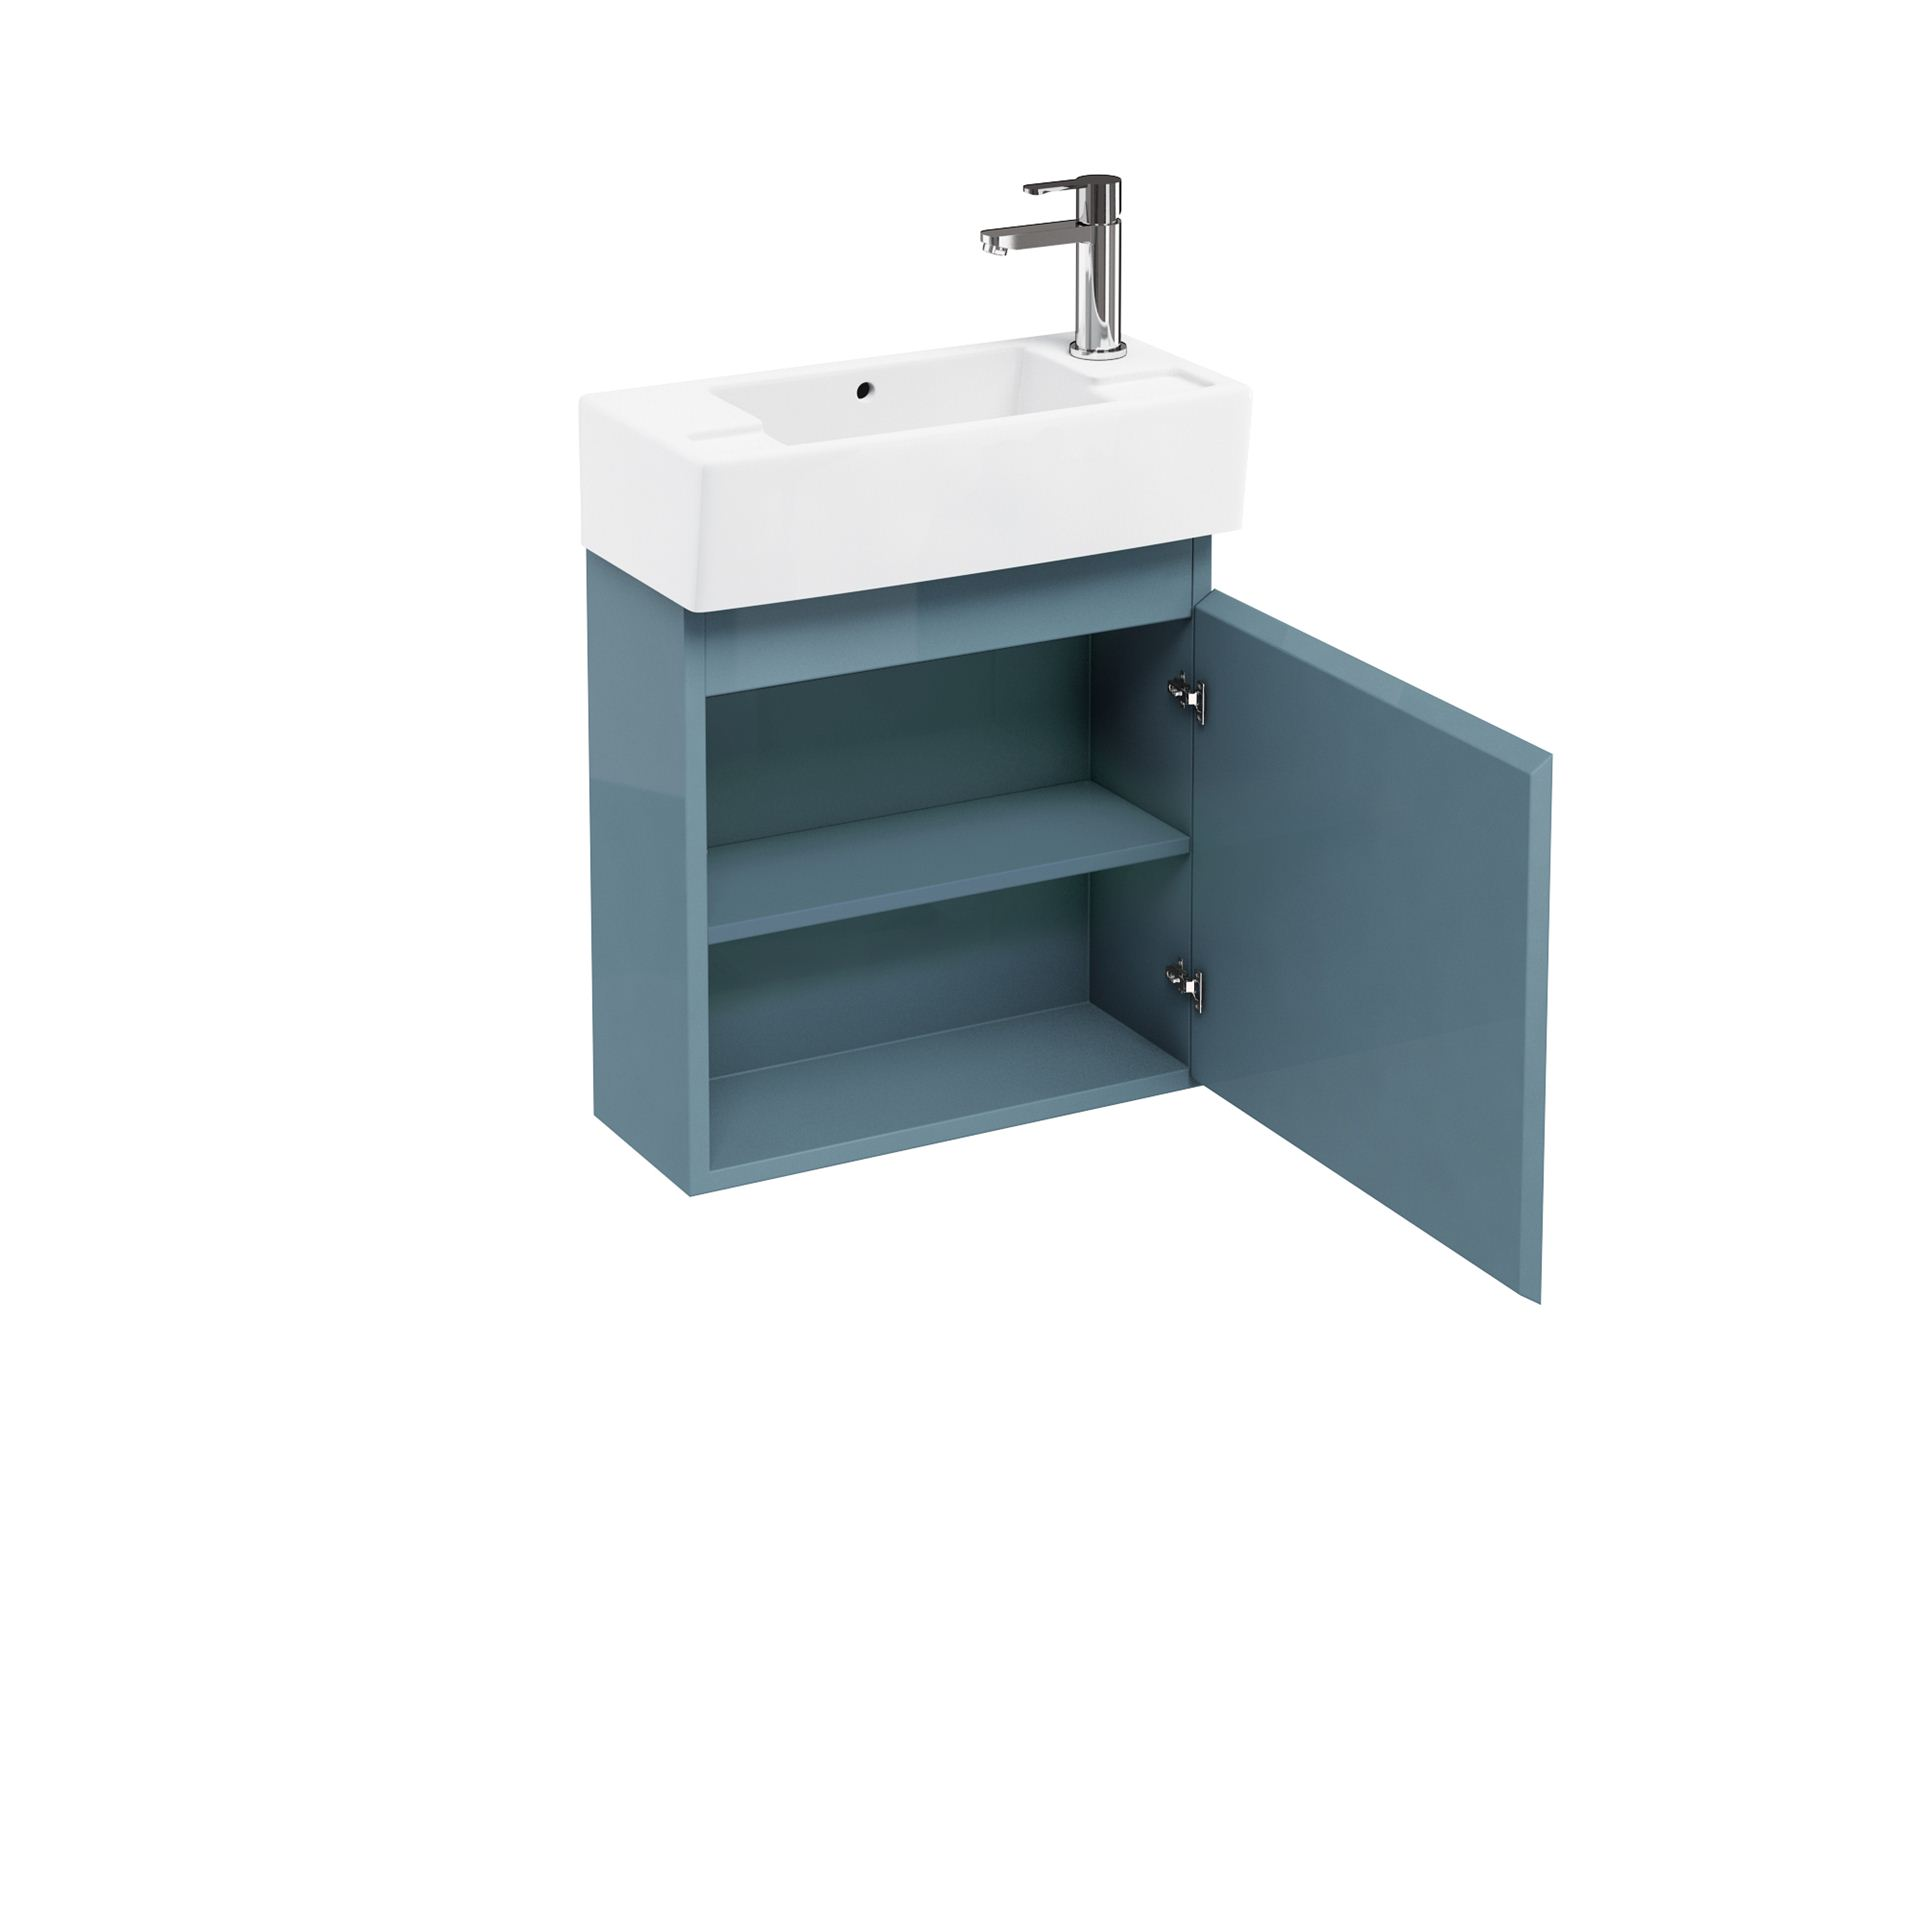 Wall Hung Cloakroom Basin Unit : Aqua Compact 250 wall hung unit and cloakroom basin ocean Brighter ...